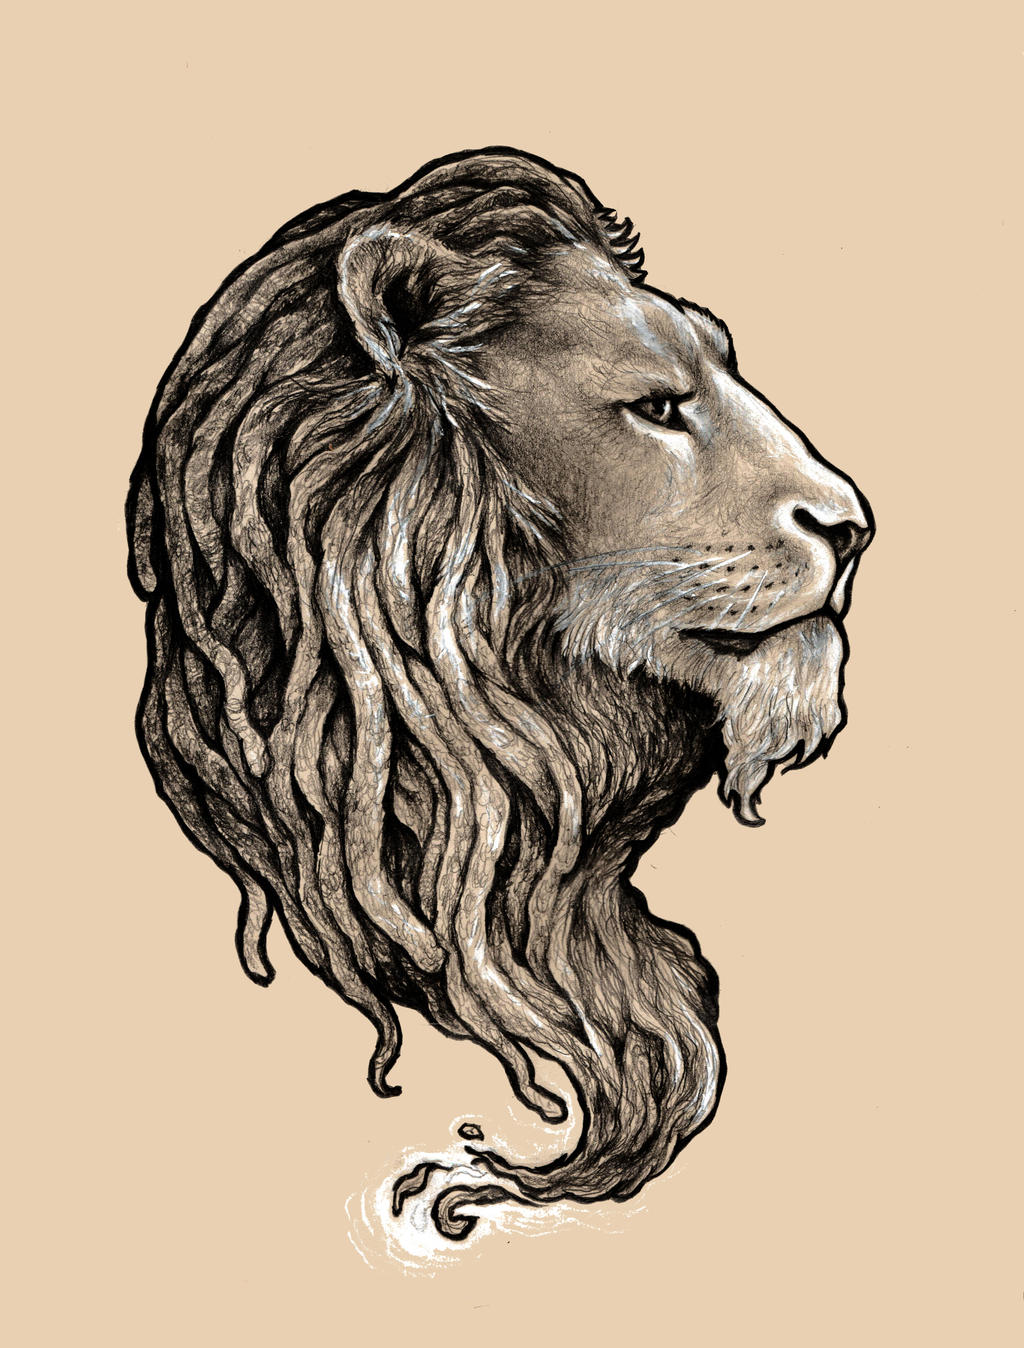 Lion with dreads tattoo drawings - photo#14